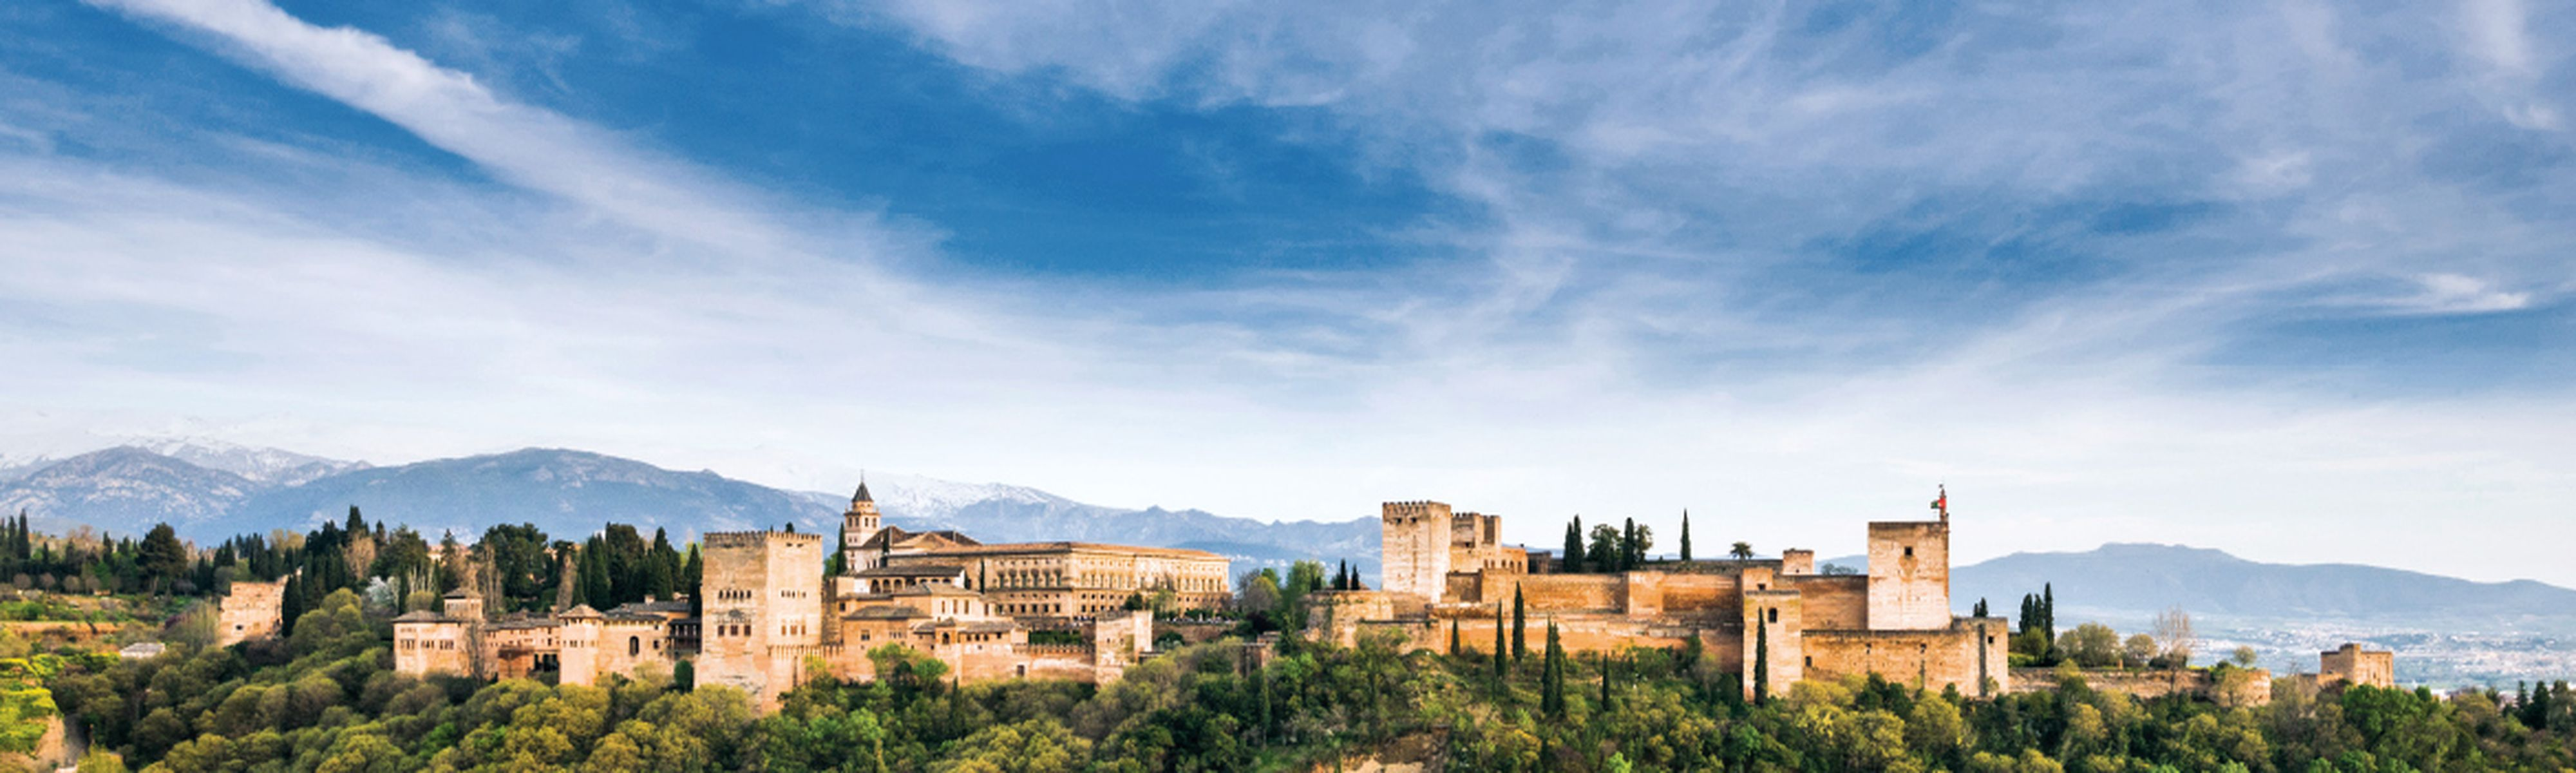 Alhambra of Granada, Andalusia, Spain